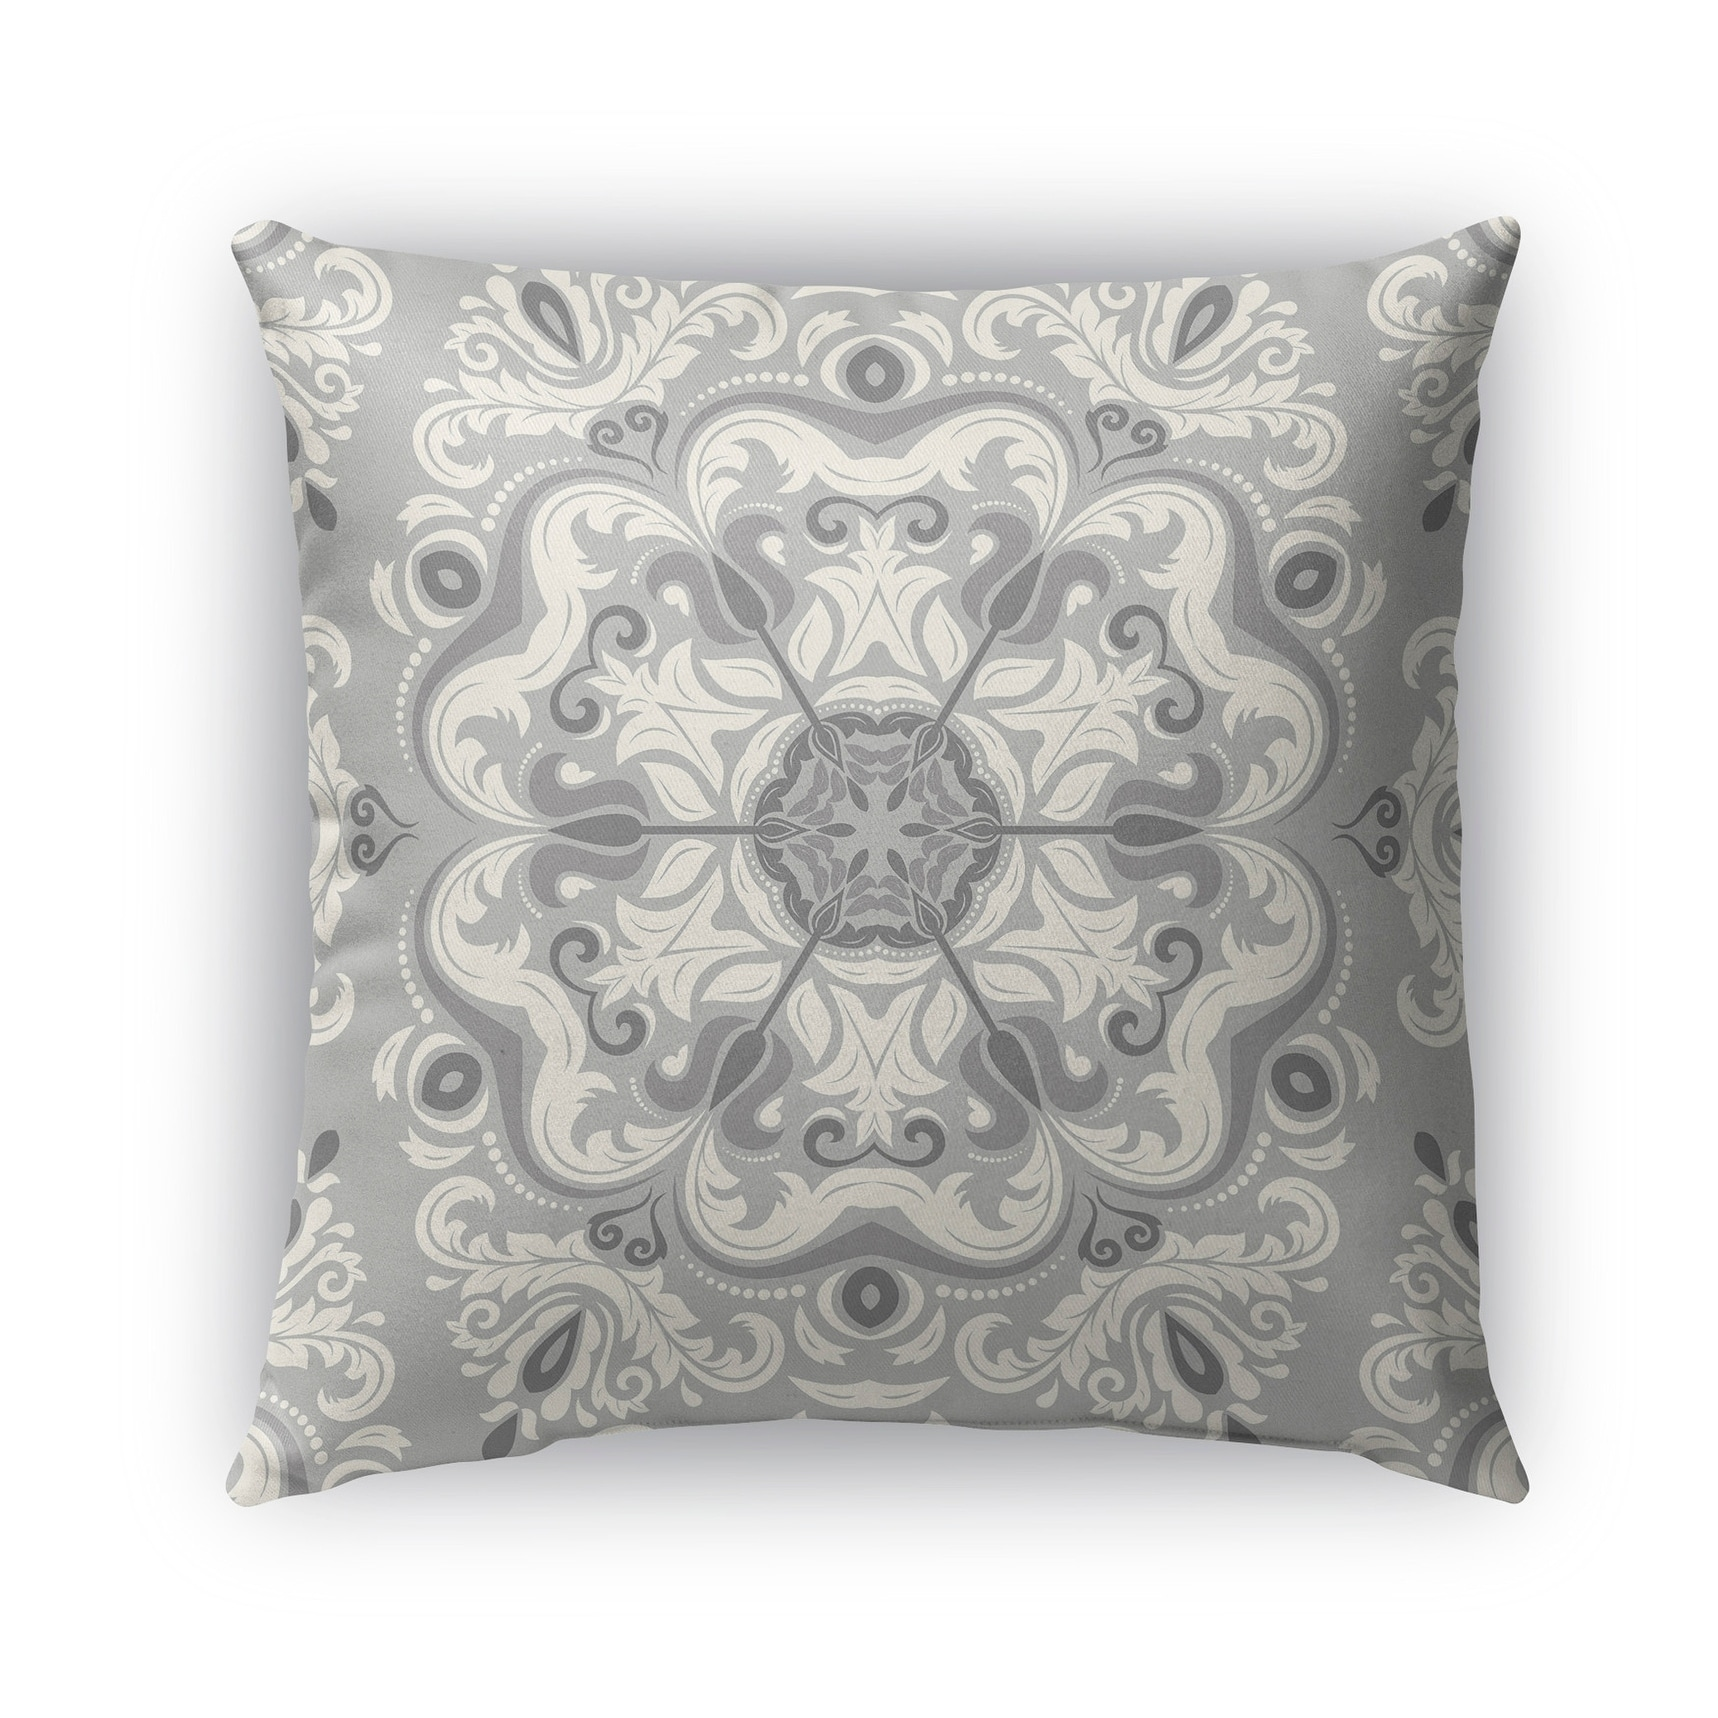 Kavka Designs grey naples outdoor pillow with insert (16 x 16)